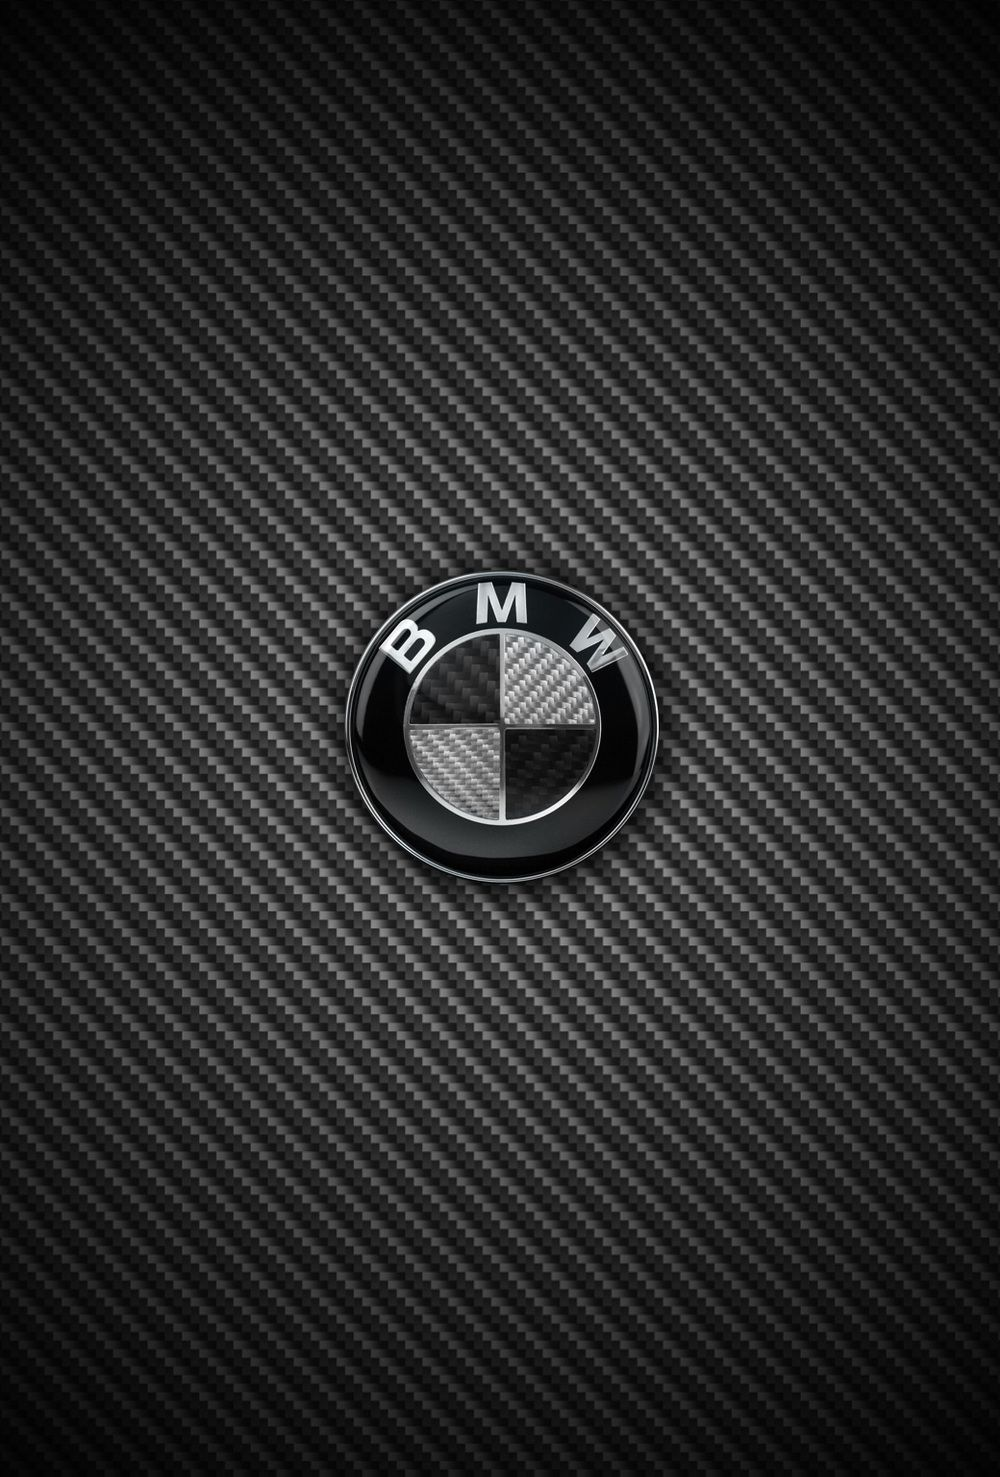 1000x1477 Carbon Fiber BMW and M Power iPhone wallpapers for iOS 7 parallax ...